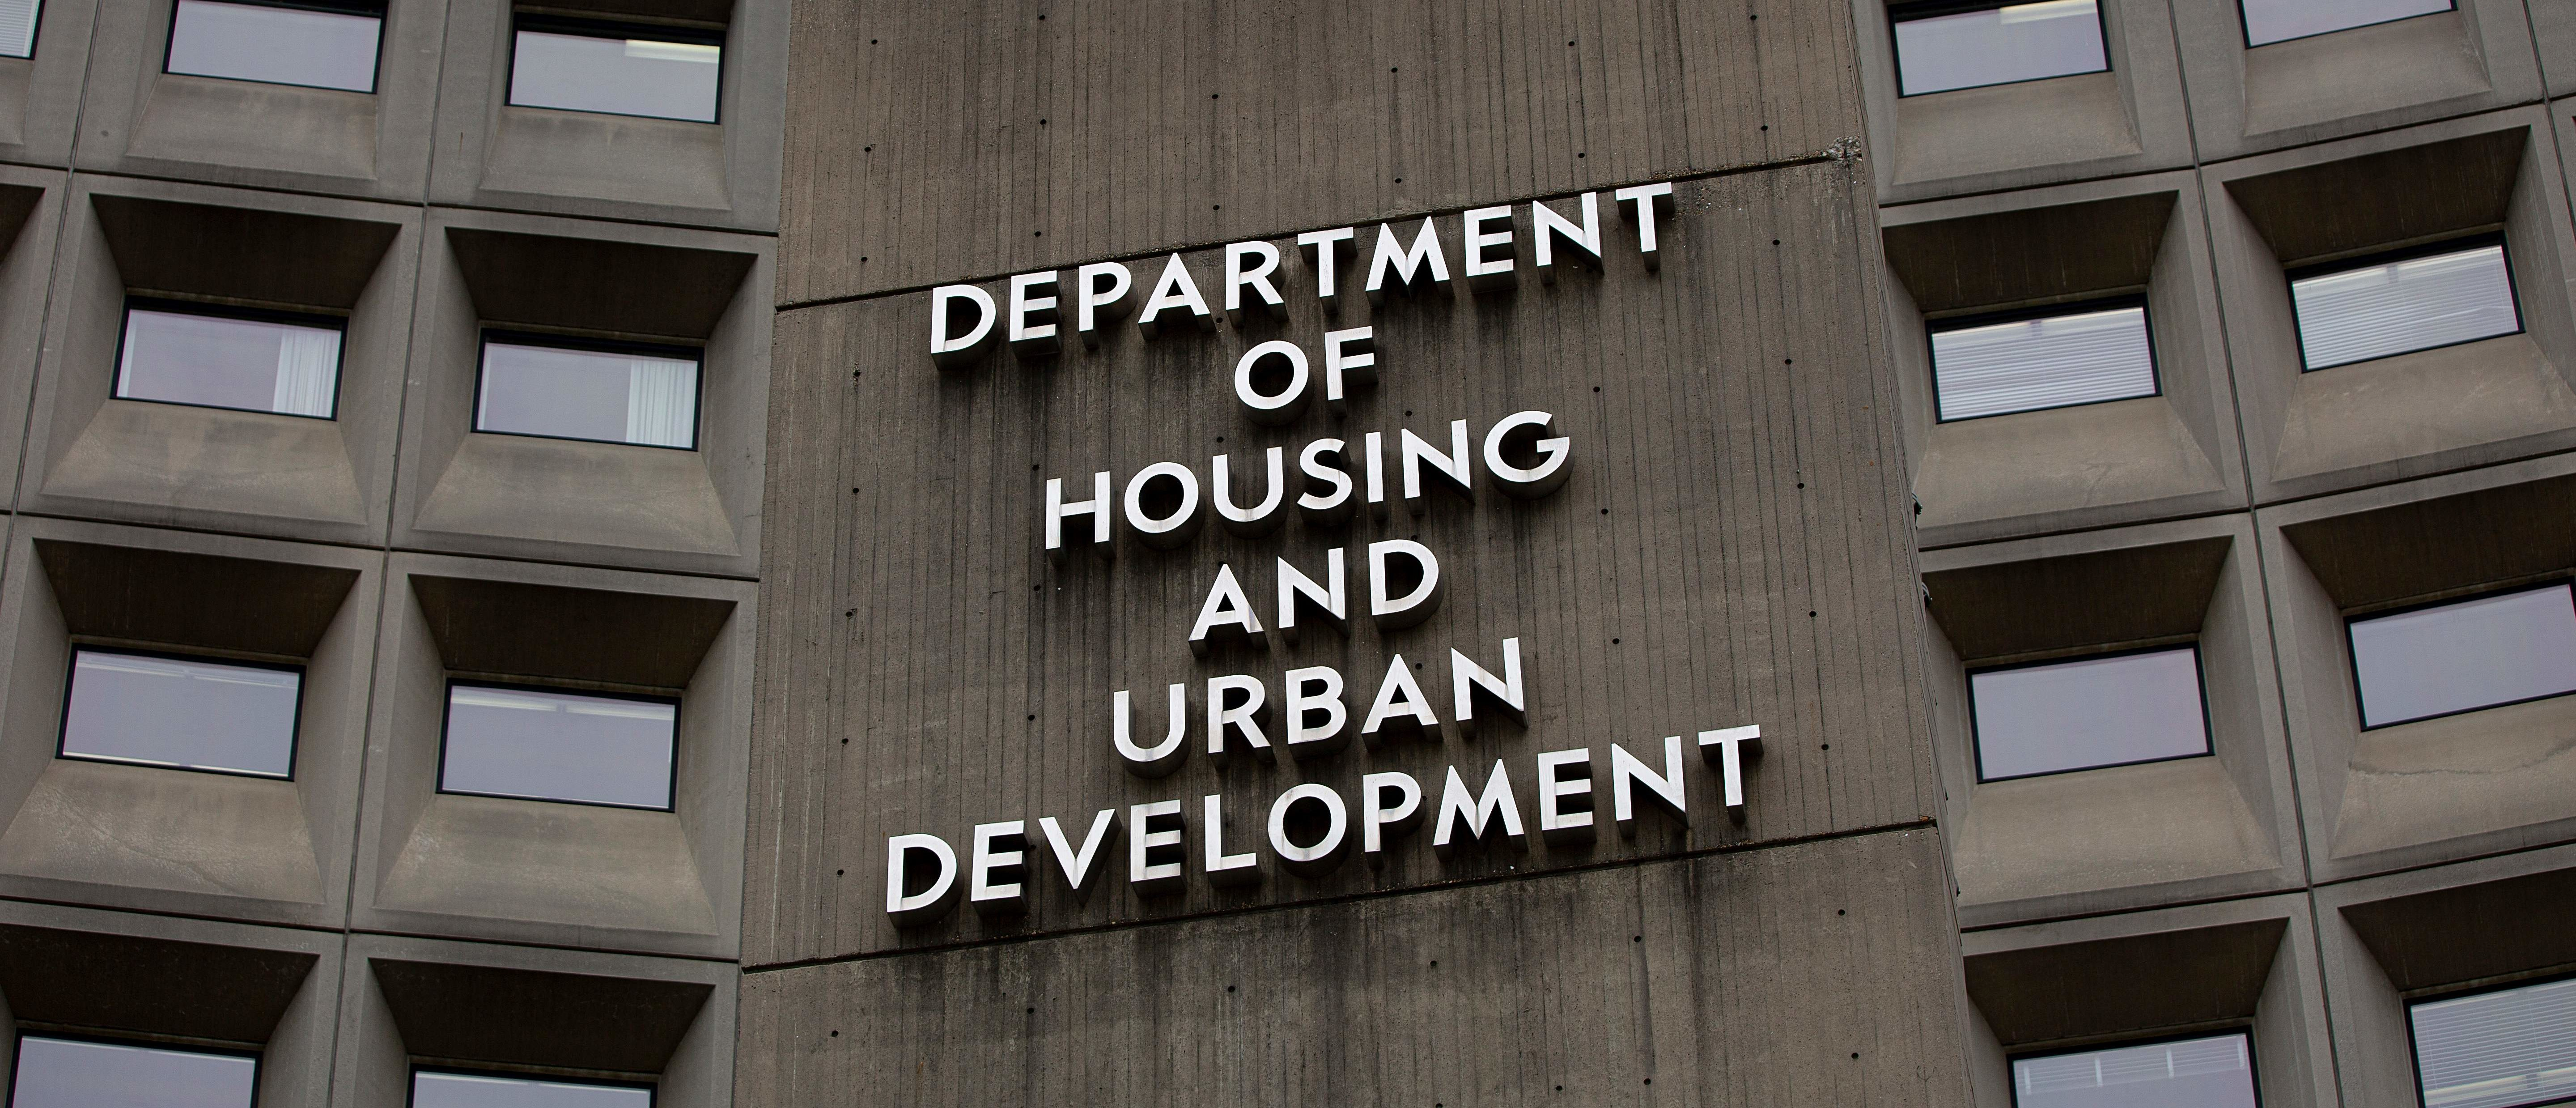 The Department of Housing and Urban Development building is seen in Washington, DC, in July 2019. (Alastair Pike/AFP via Getty Images)